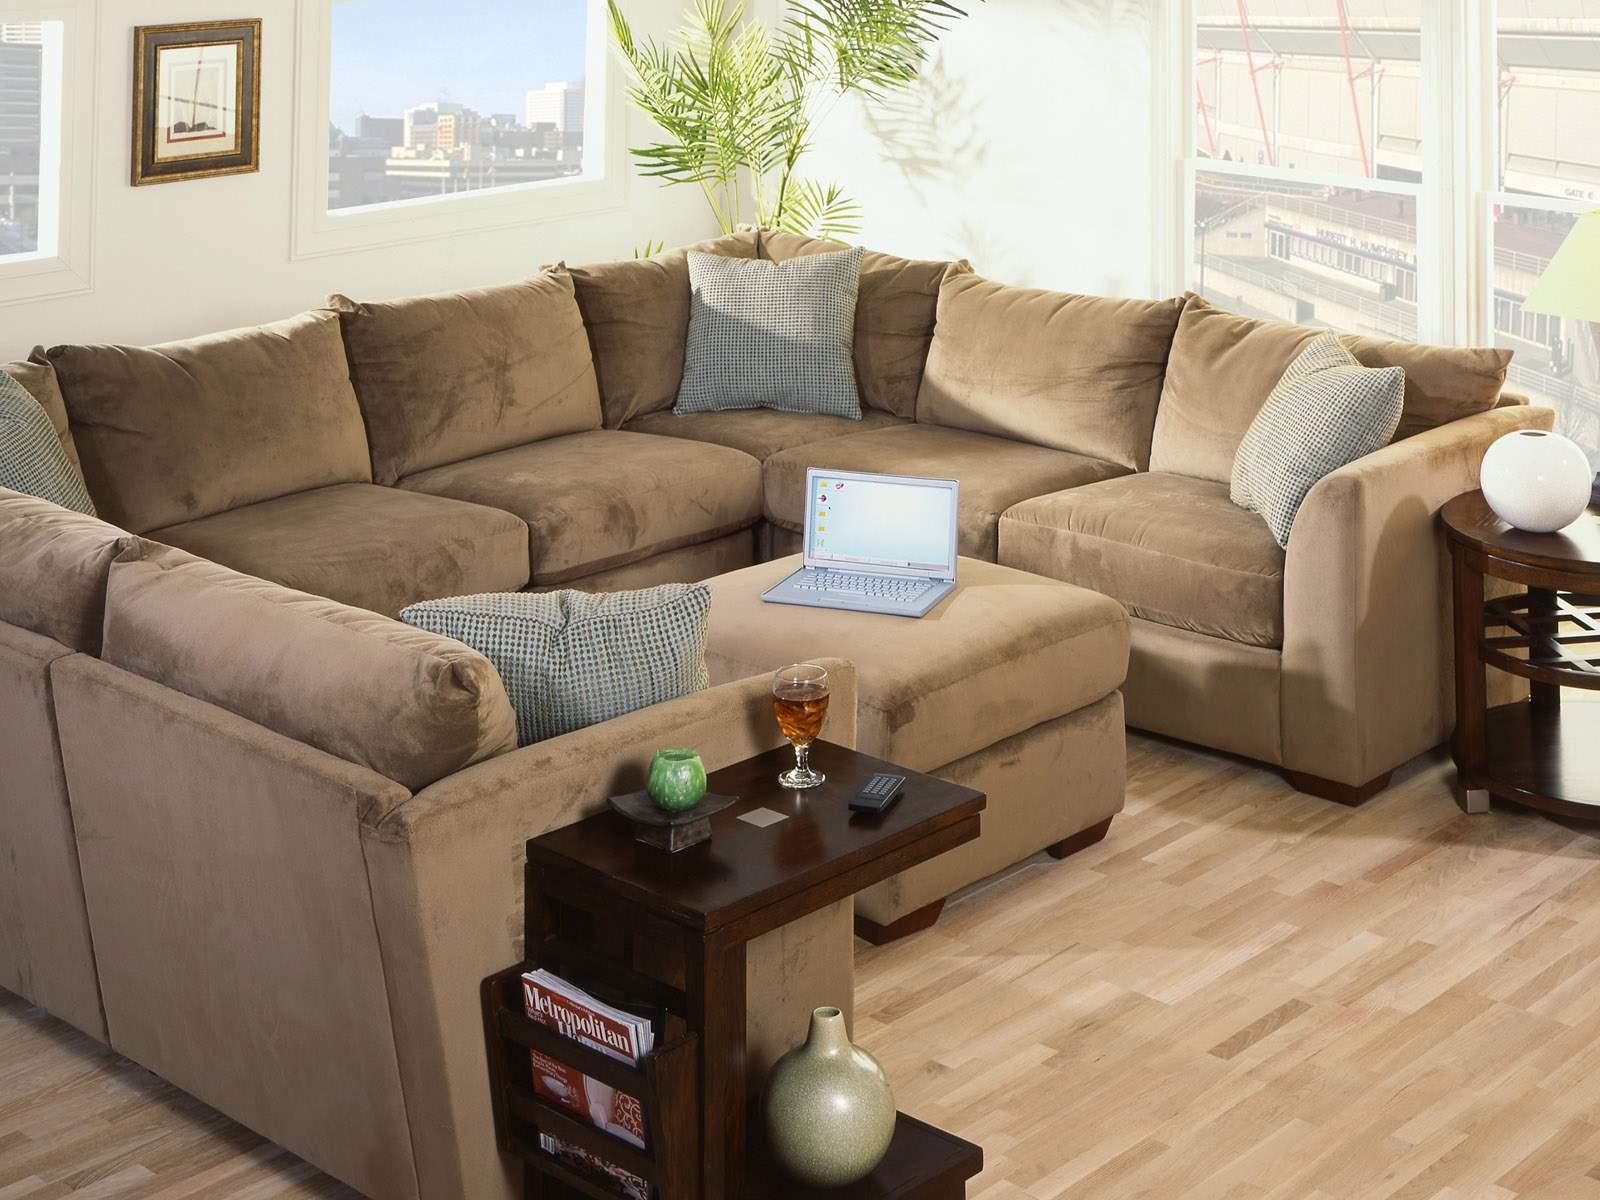 Interior design ideas for Tv room sofa